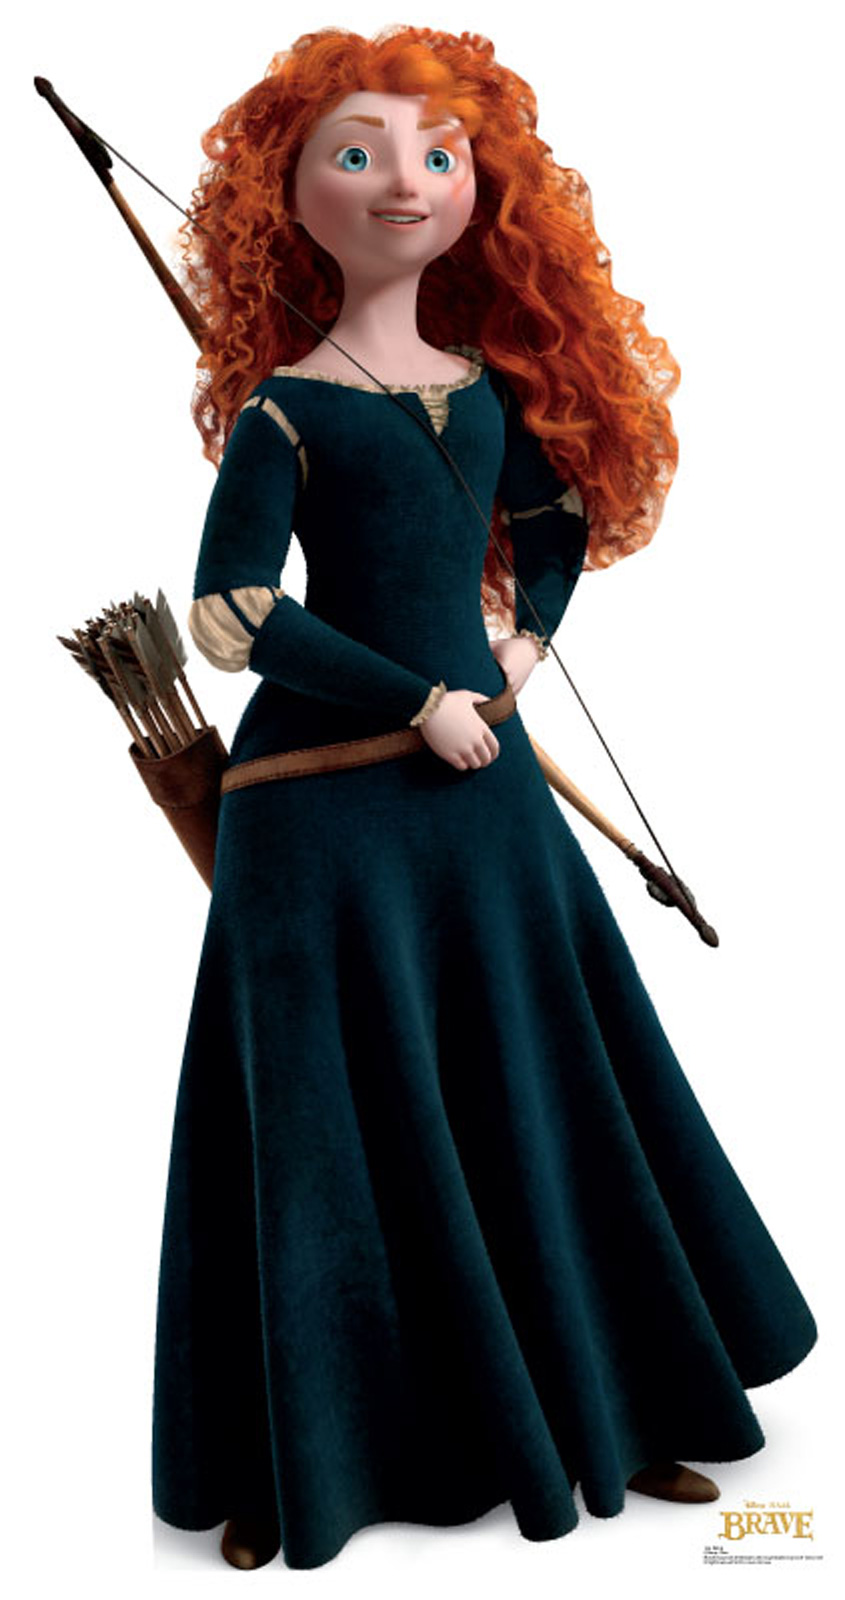 Disney Brave Merida Standup